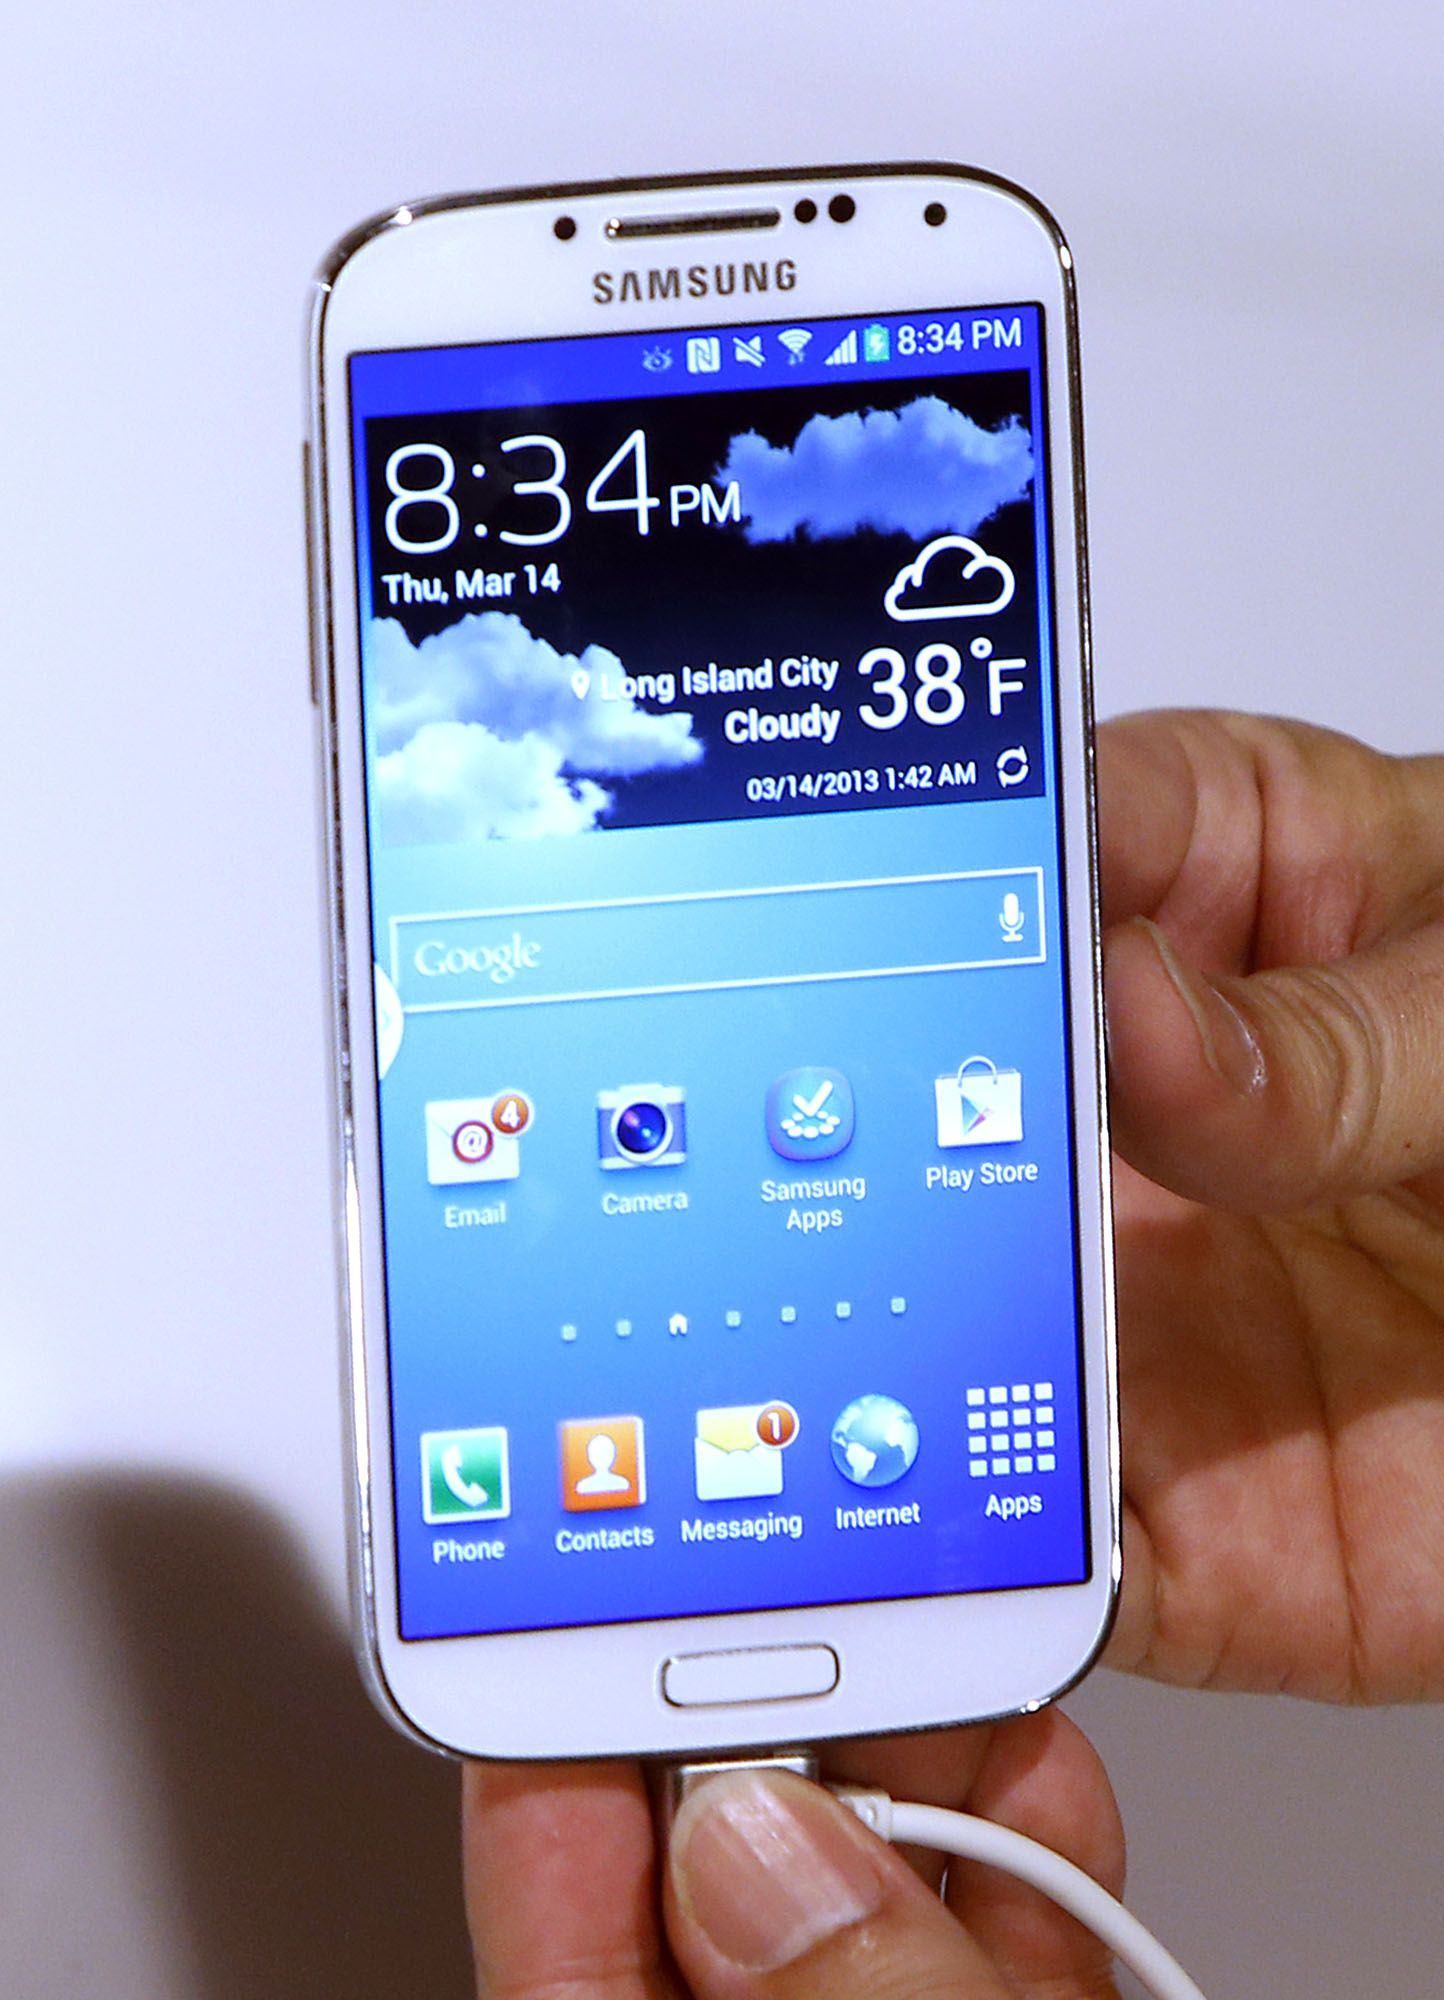 Transferring files between Linux PC and Samsung galaxy S4 active Android 4.2.2 phone